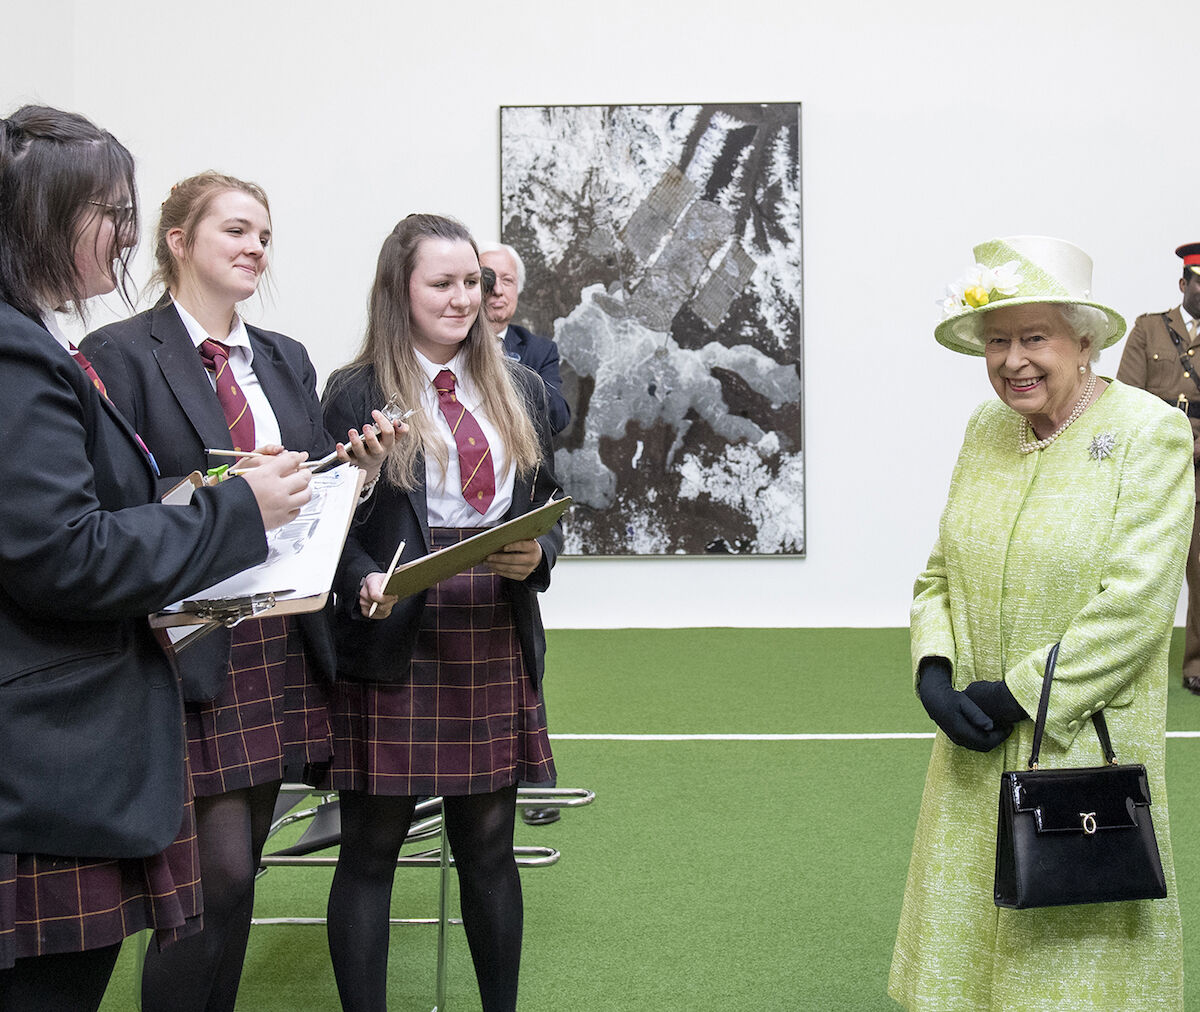 Students from Sexey's School, Bruton, and Her Majesty The Queen. Behind: Matthew Day Jackson, Solipsist III, 2018. © Matthew Day Jackson. Photo by Sim Canetty-Clarke.